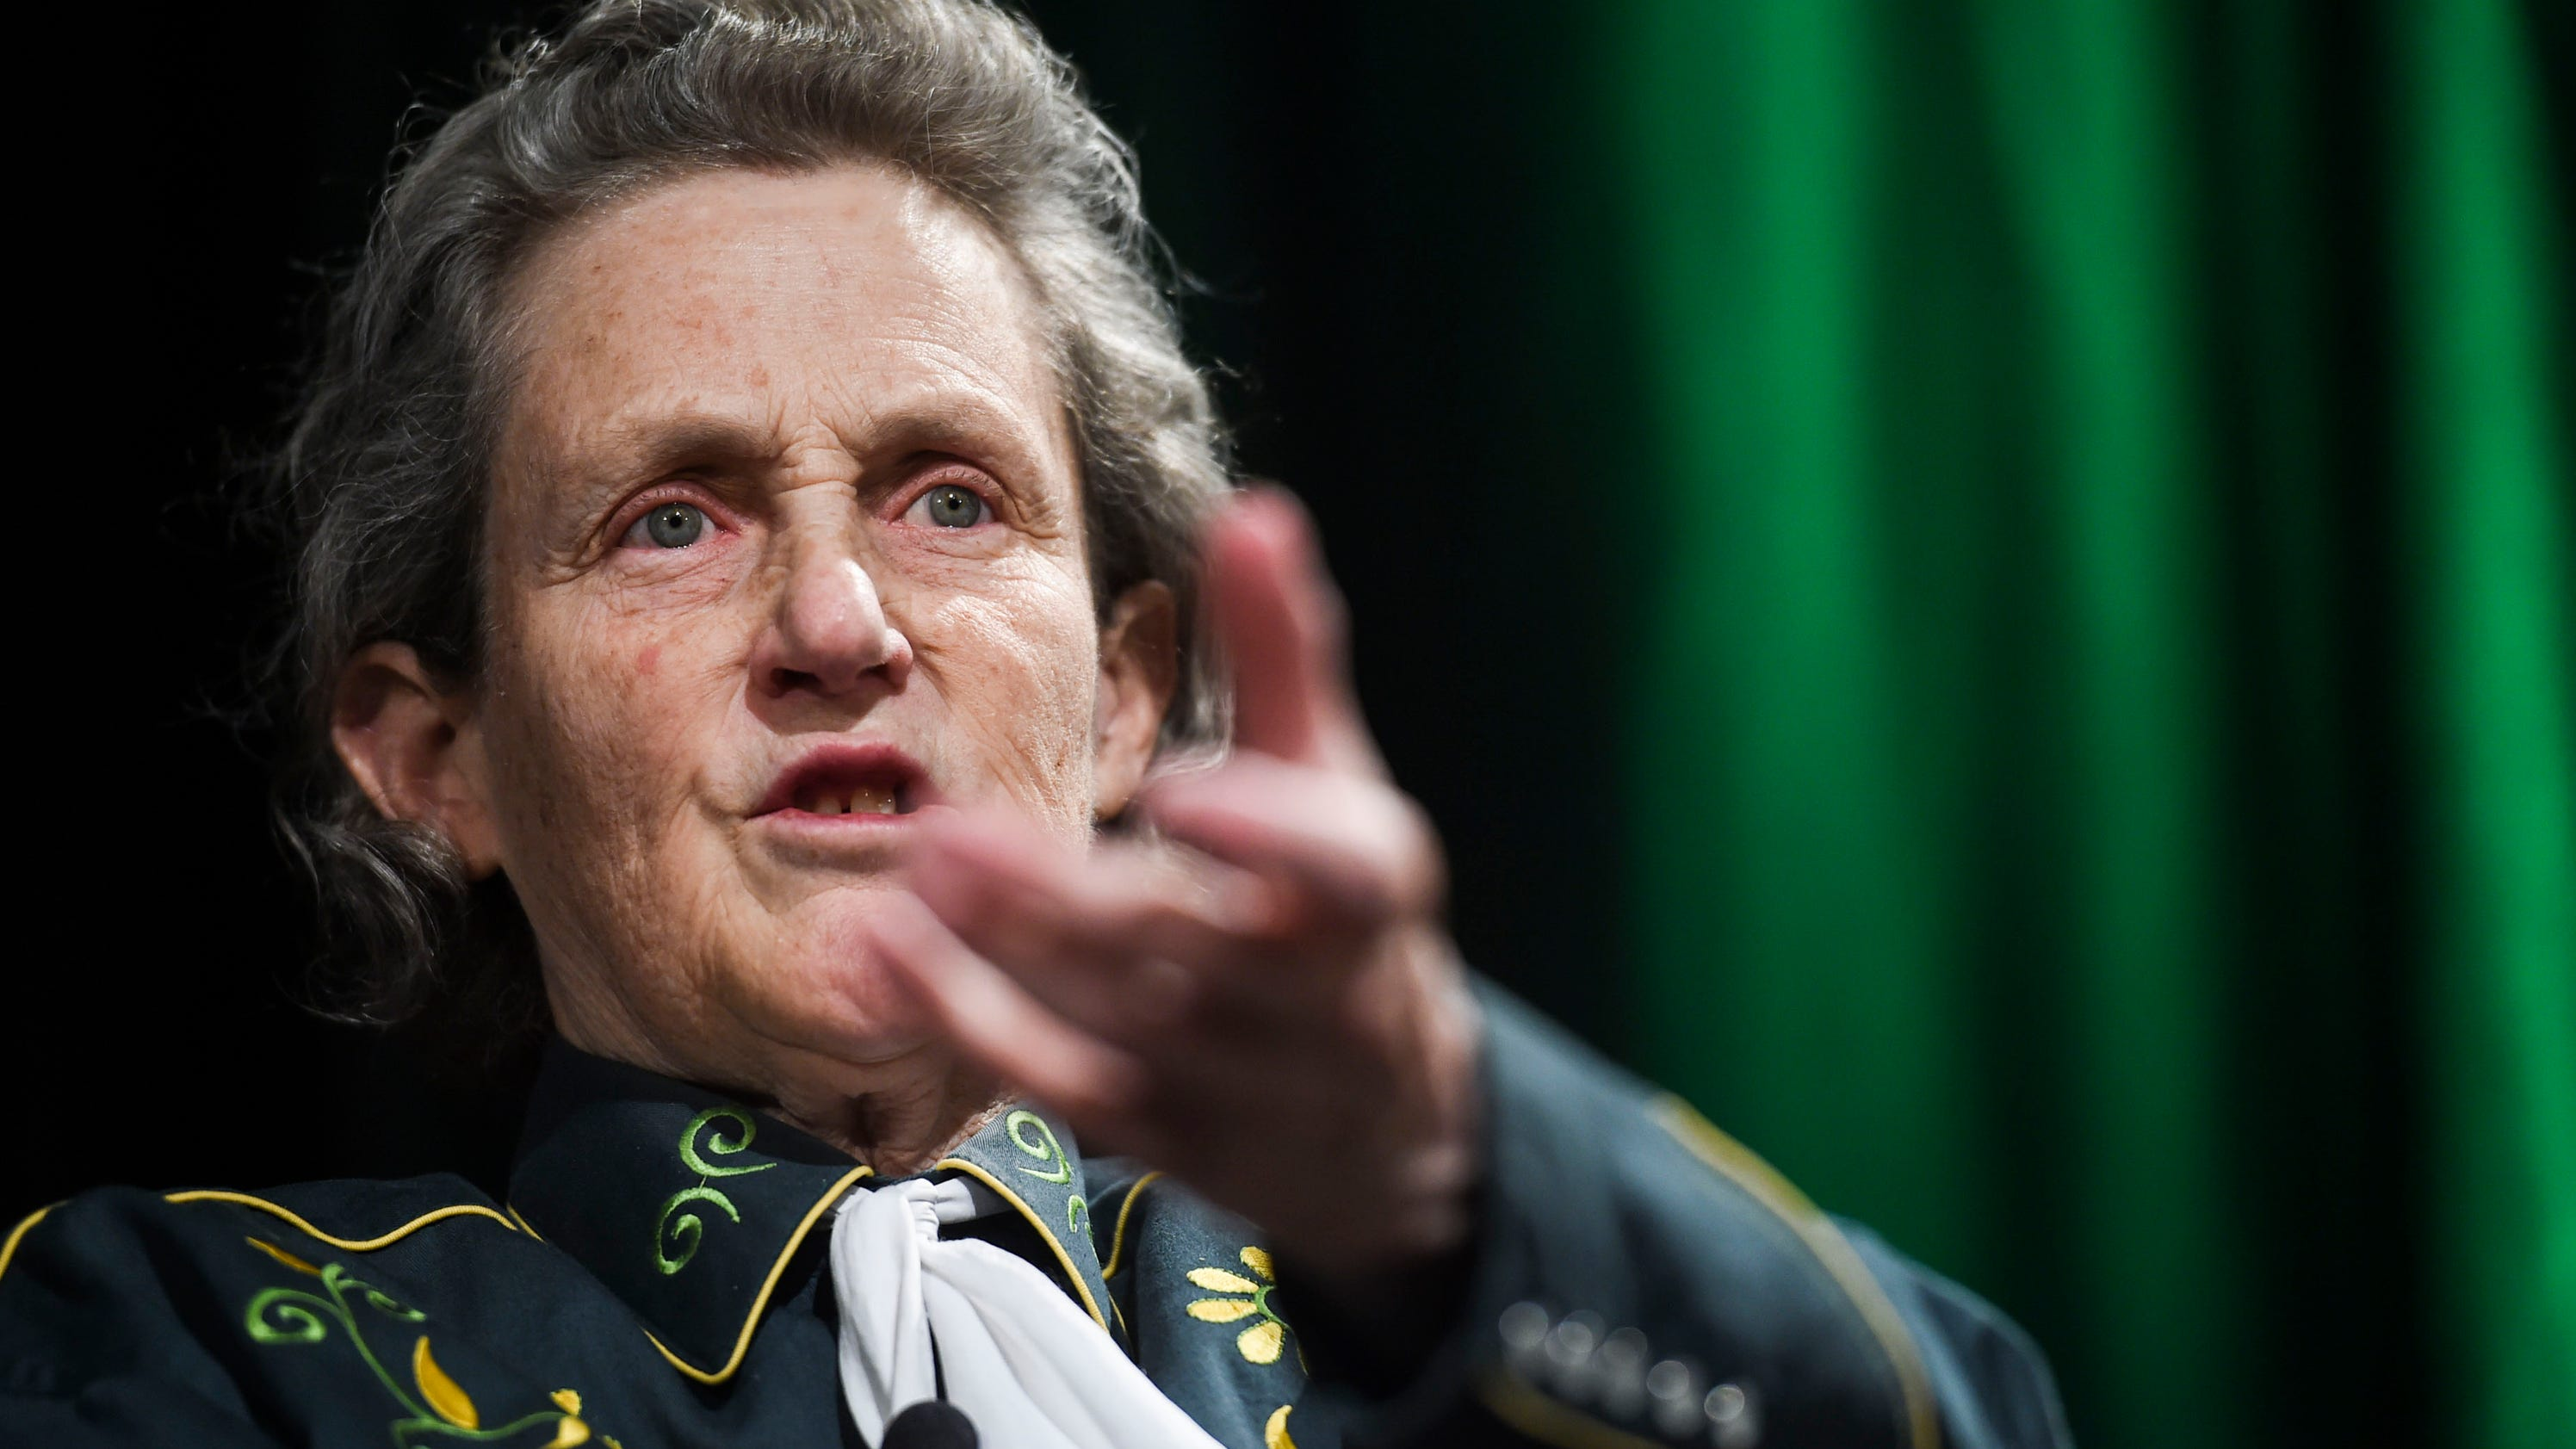 grandin chat Vegan chat on discord:  discussion what are your thoughts on temple grandin  not only is temple grandin extremely high functioning, but even if she wasn't .